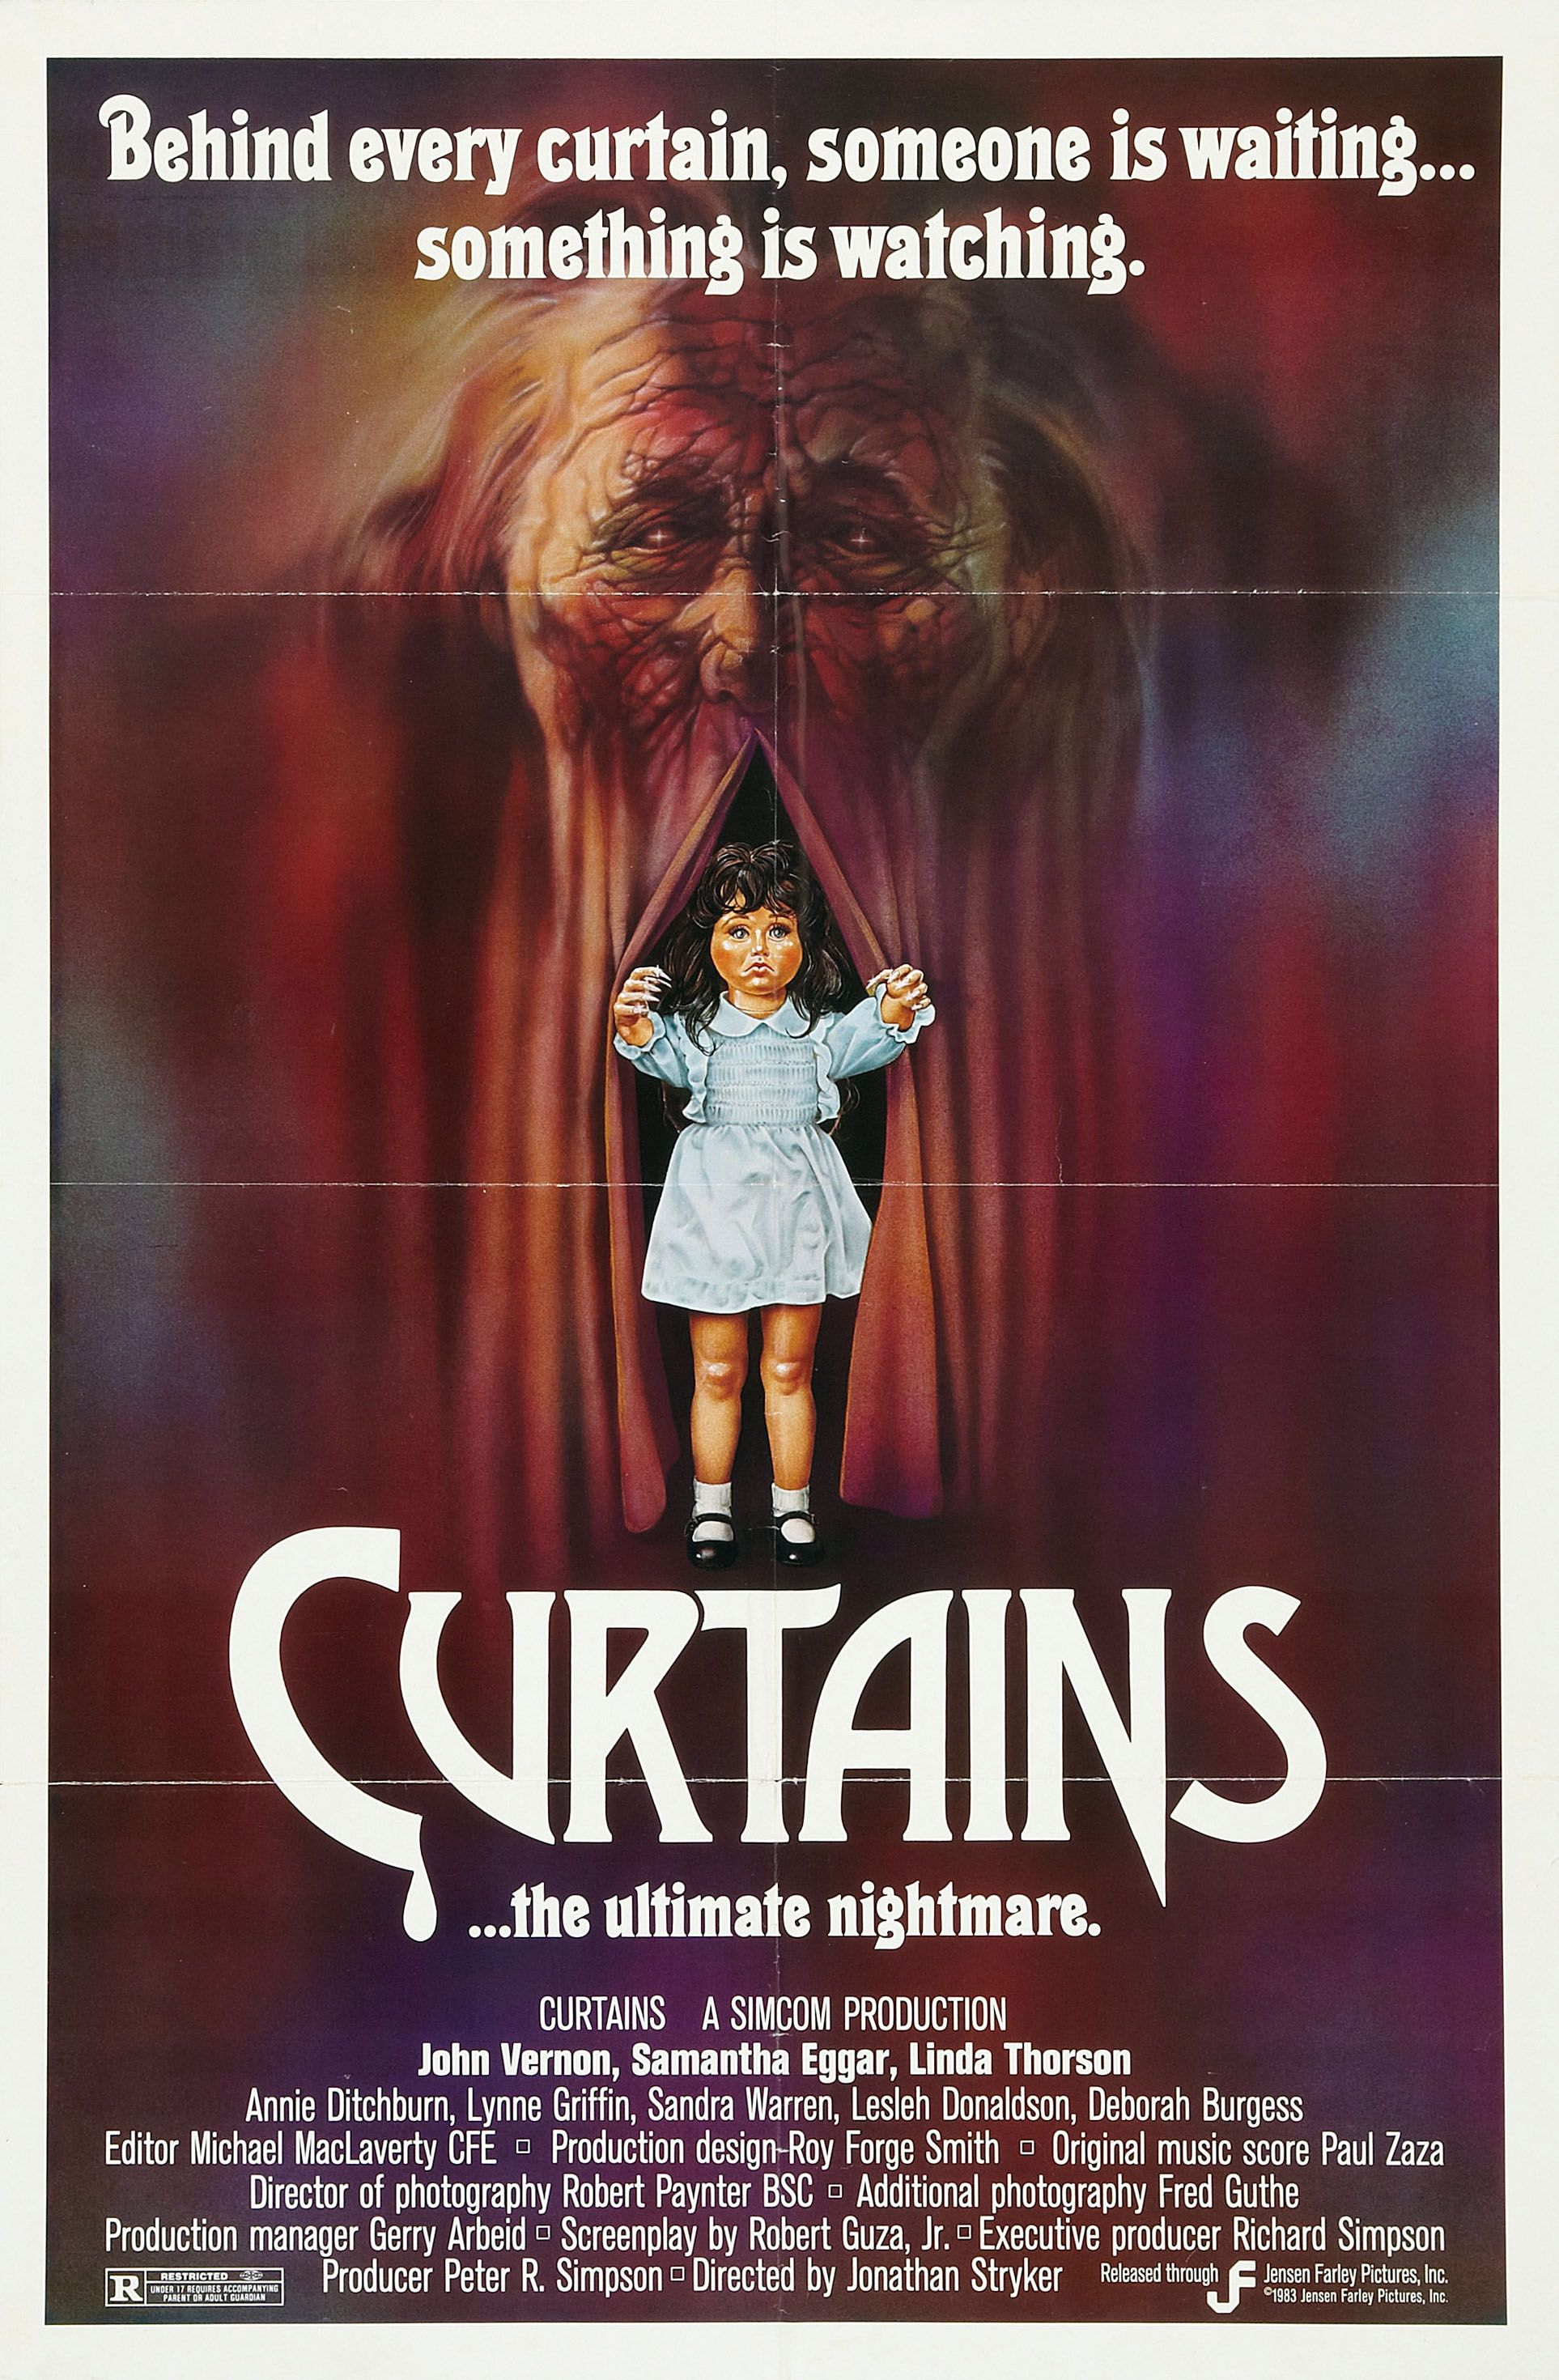 Curtains (1983) | MOVIE POSTERS SCI FI, HORROR in 2019